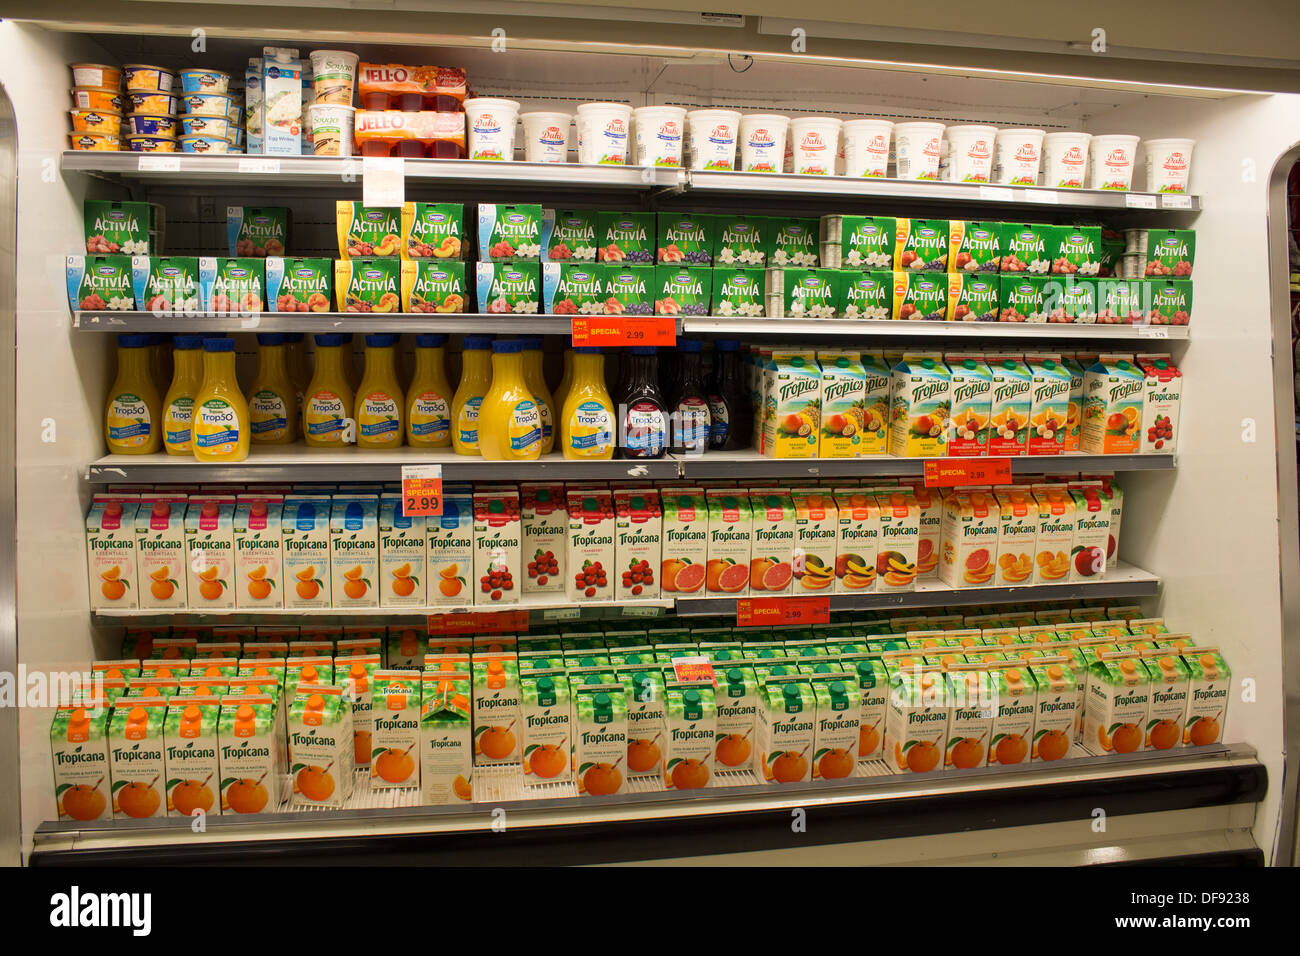 c c grocery Cdc's mission is to provide our customers with quality grocery products at unbeatable prices at the same time.